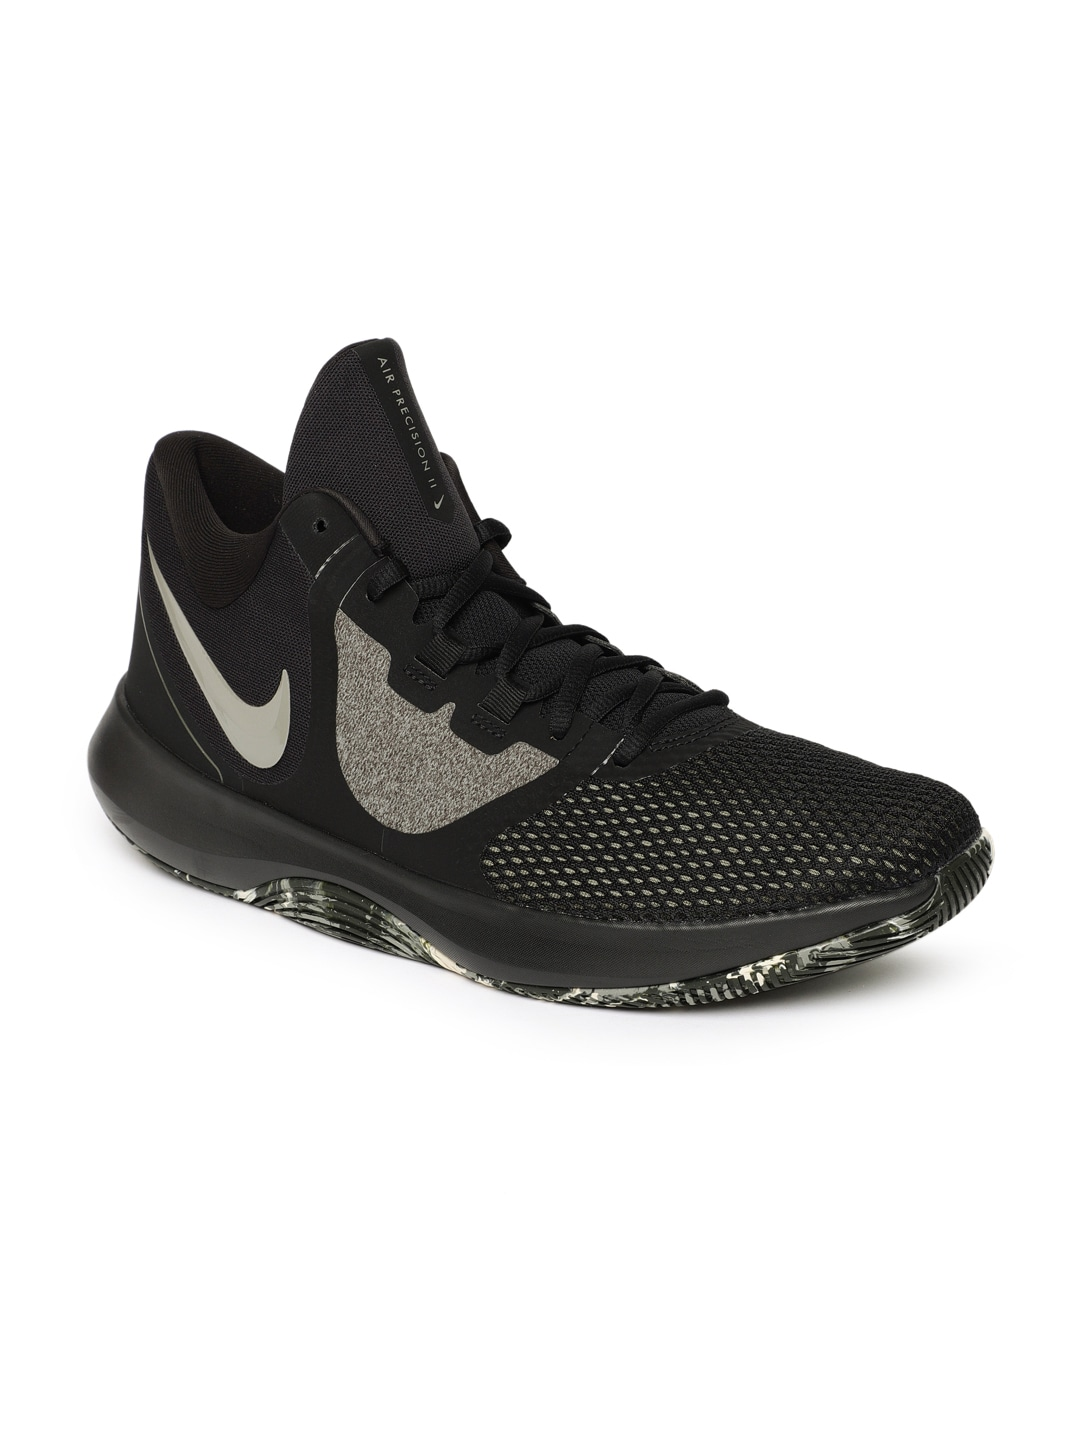 size 40 6376c 738c4 Nike - Shop for Nike Apparels Online in India   Myntra